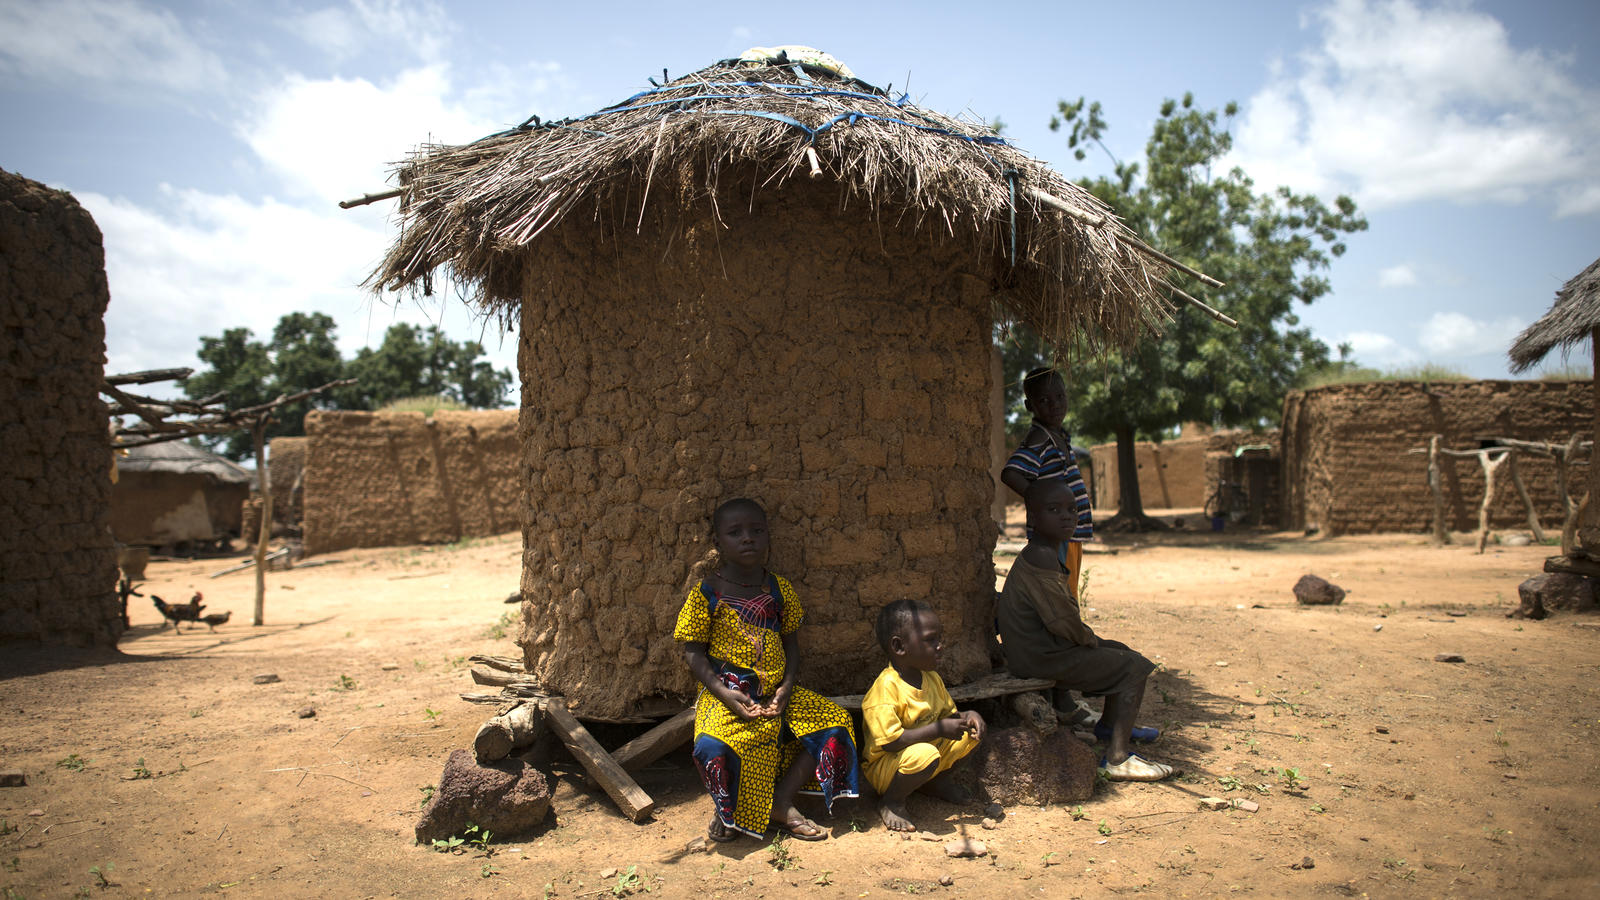 Children sit in the shade around a hut in their village in Mali.